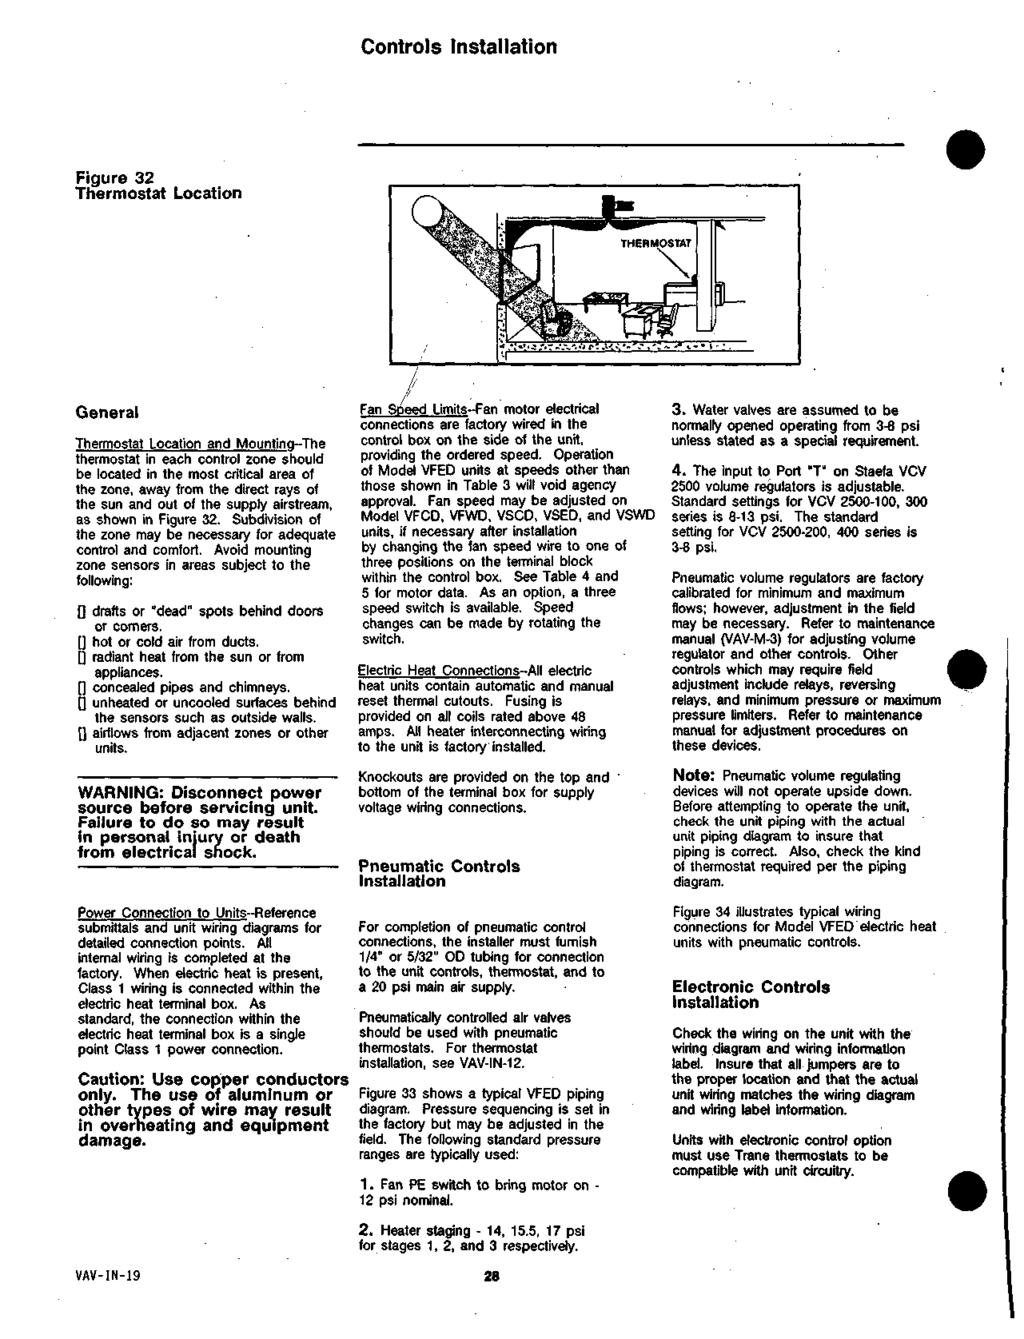 Hvac Bldg On In Wo Desc Mrp Esj Pdf General Thermostat Wiring Controls Installation Figure 32 Location And Mountinq The Each